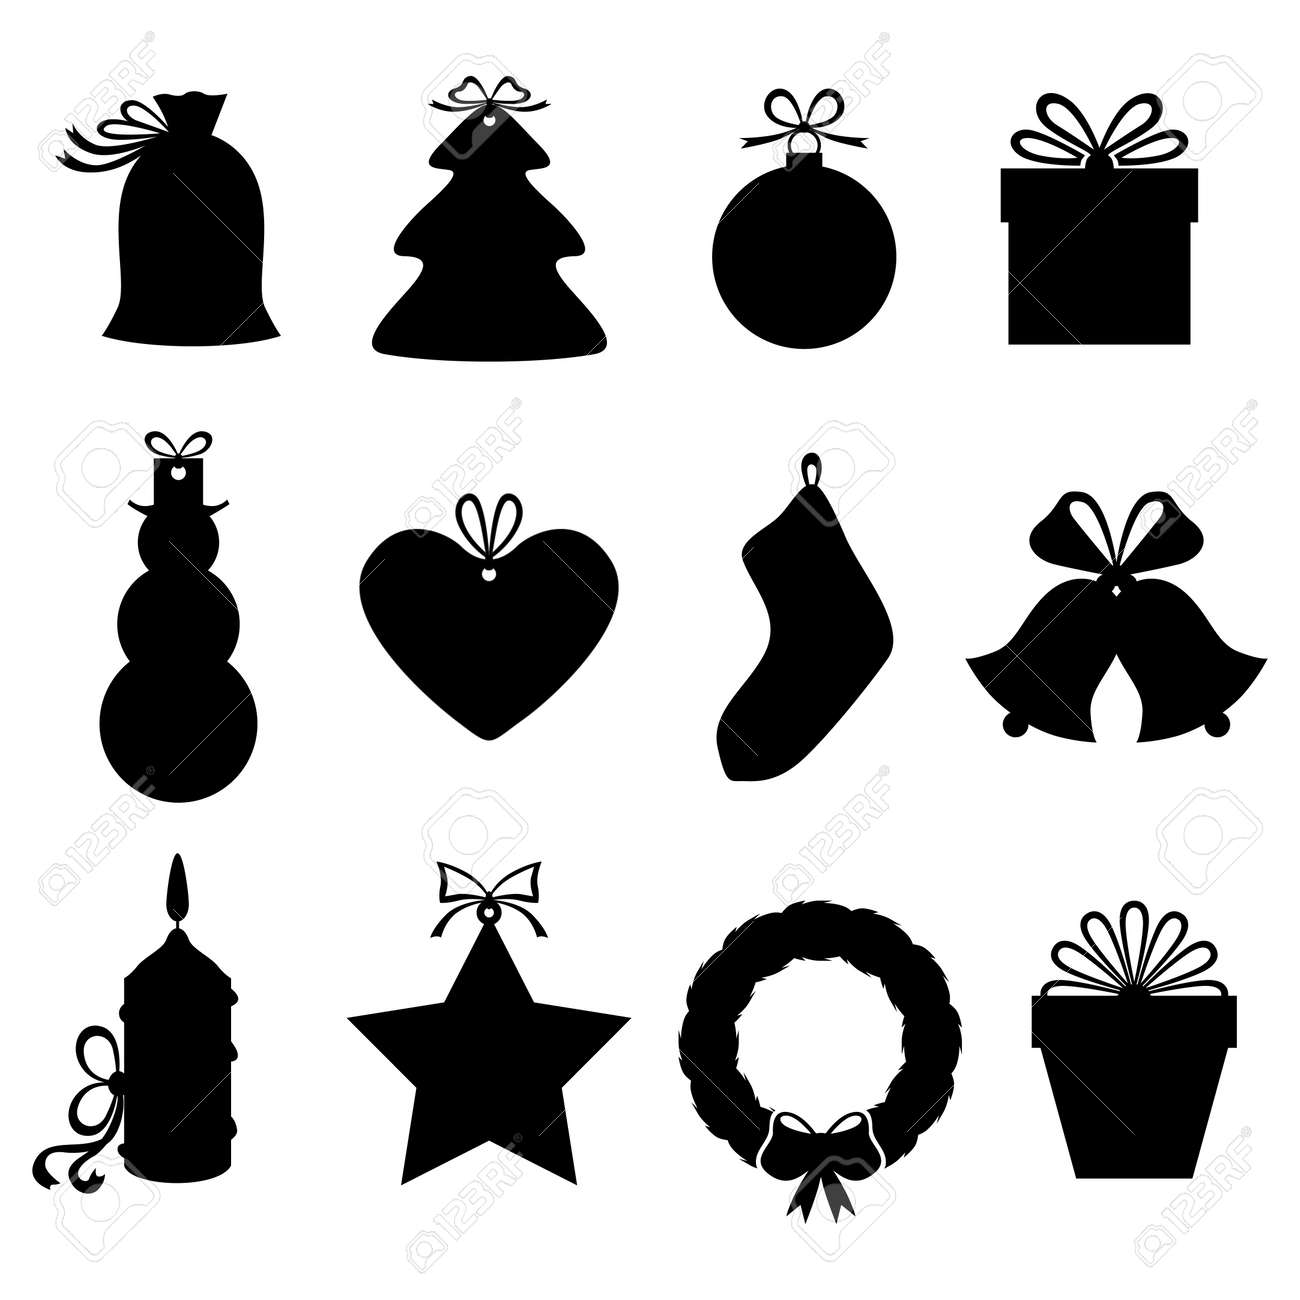 Vector Illustrations Of Silhouette Christmas Gifts And Labels Royalty Free Cliparts Vectors And Stock Illustration Image 44124295